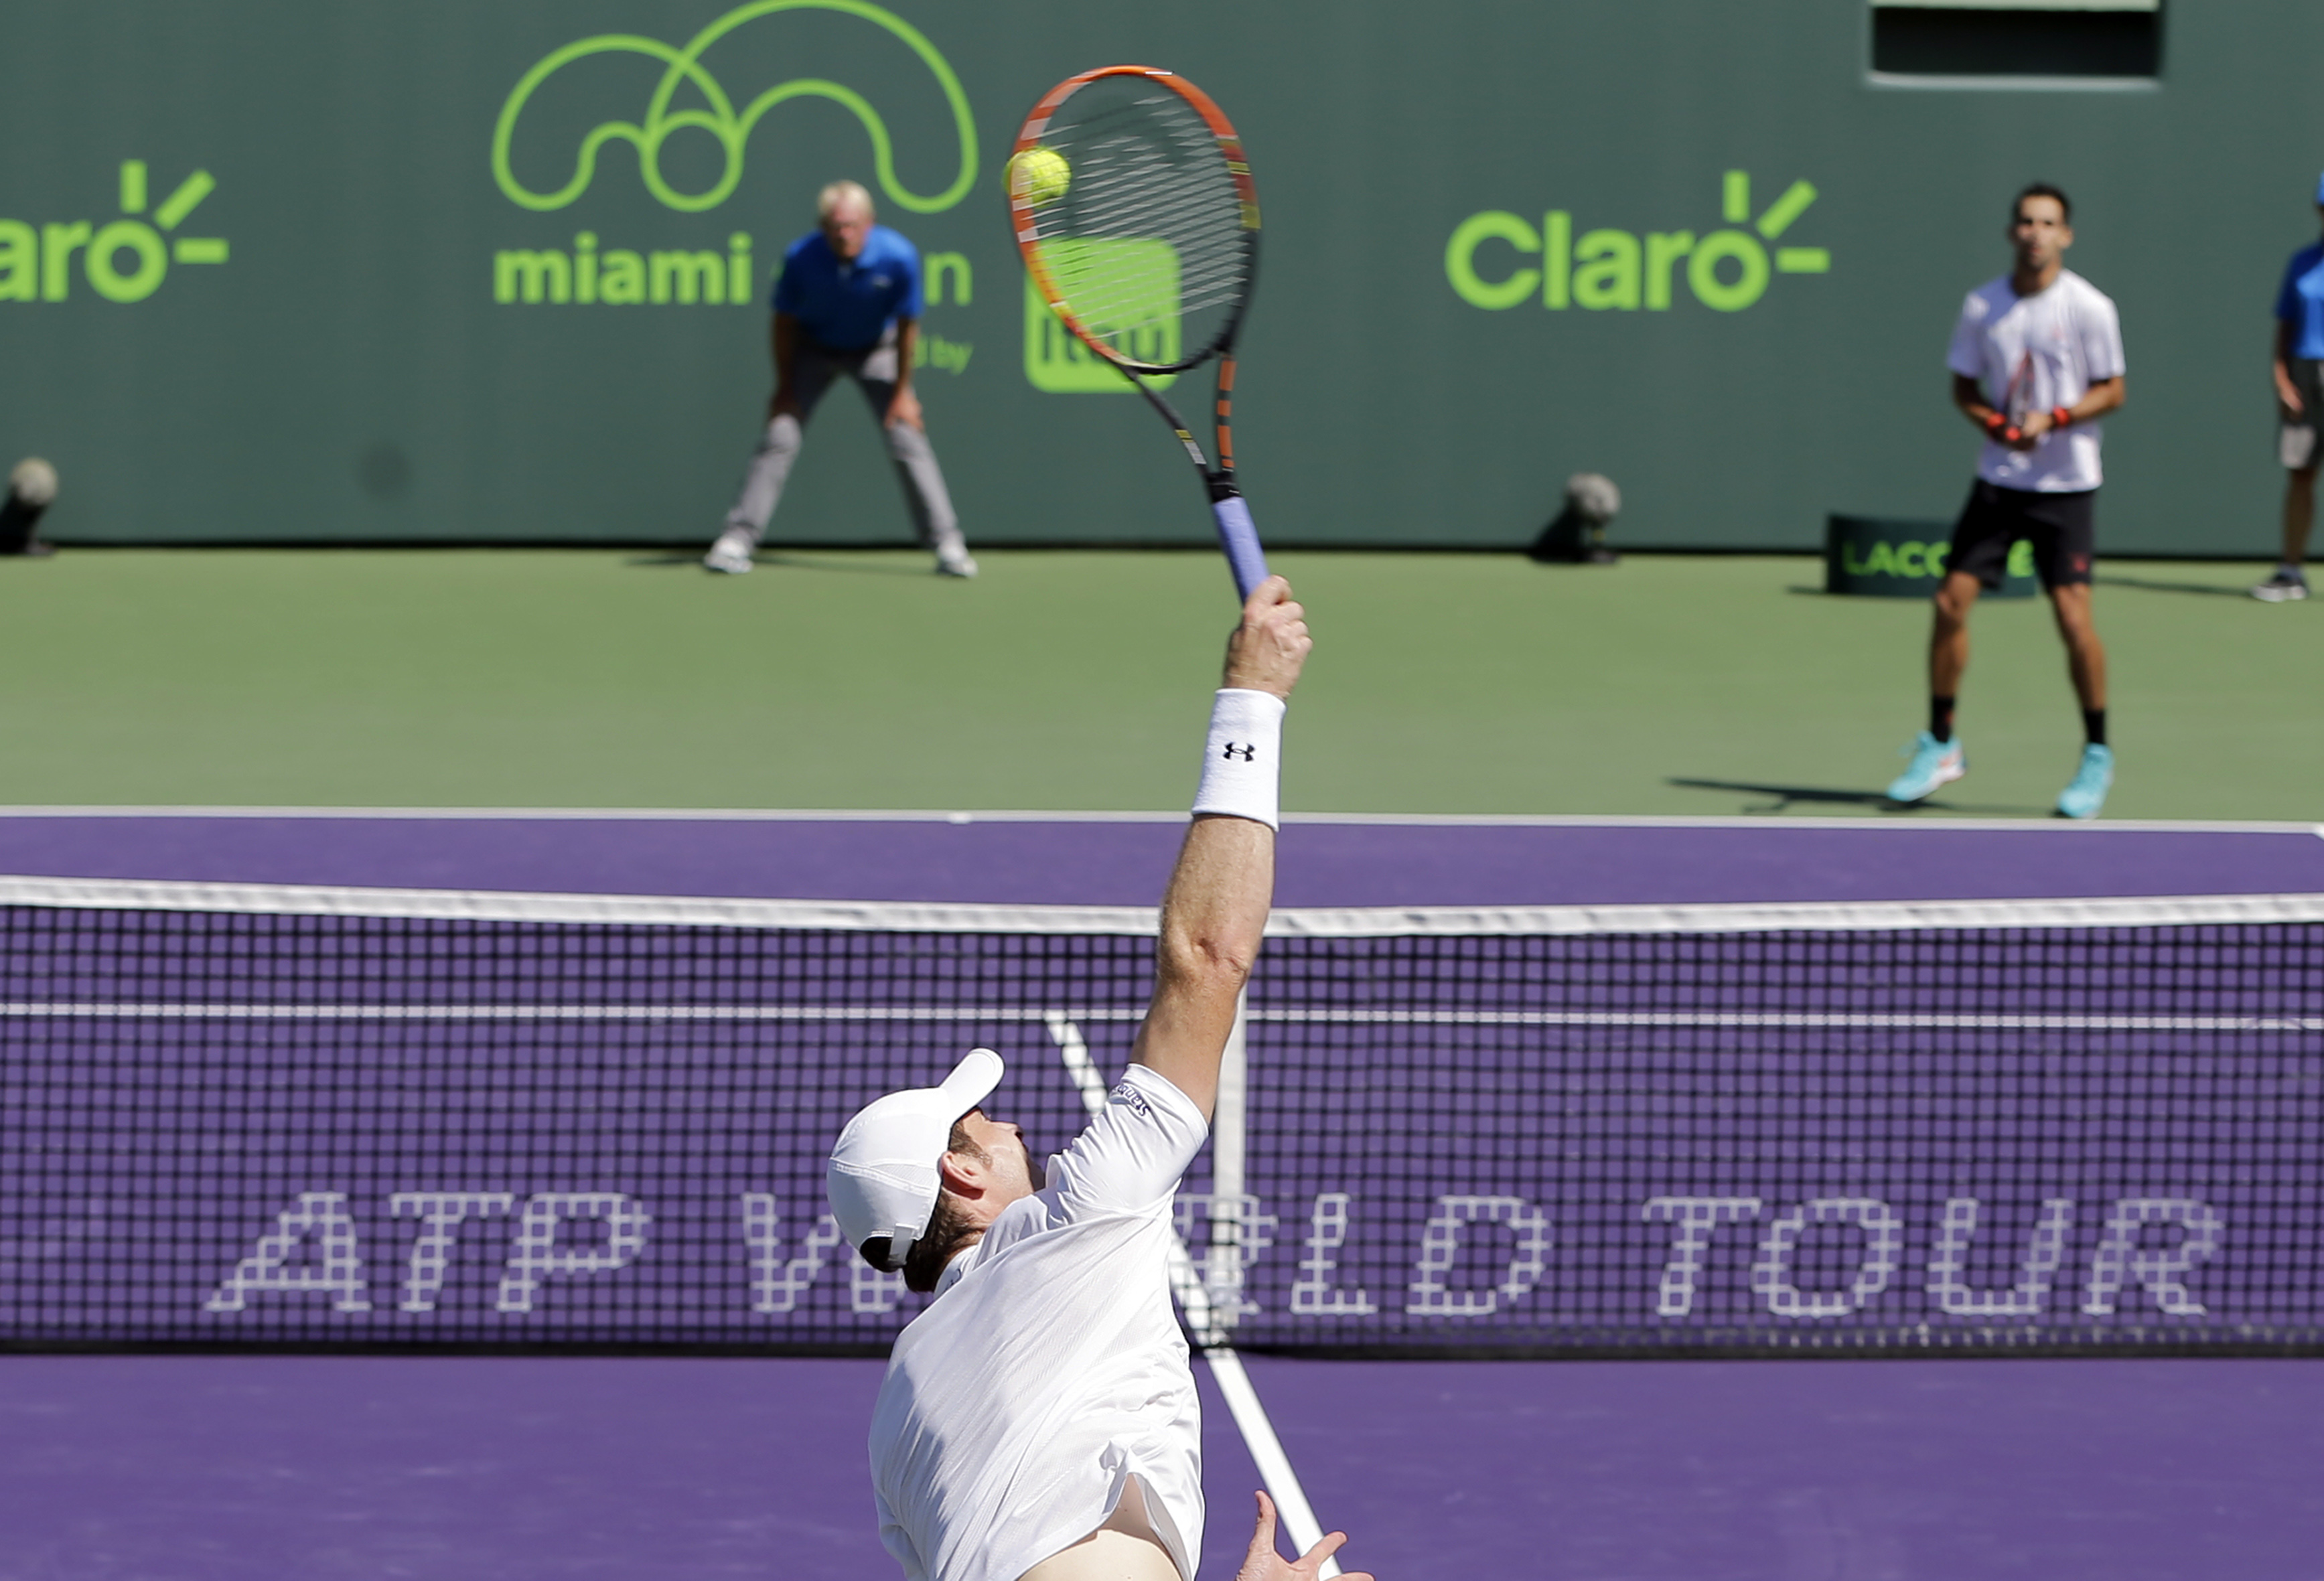 Murray reaches 4th round at Miami Open by beating Giraldo